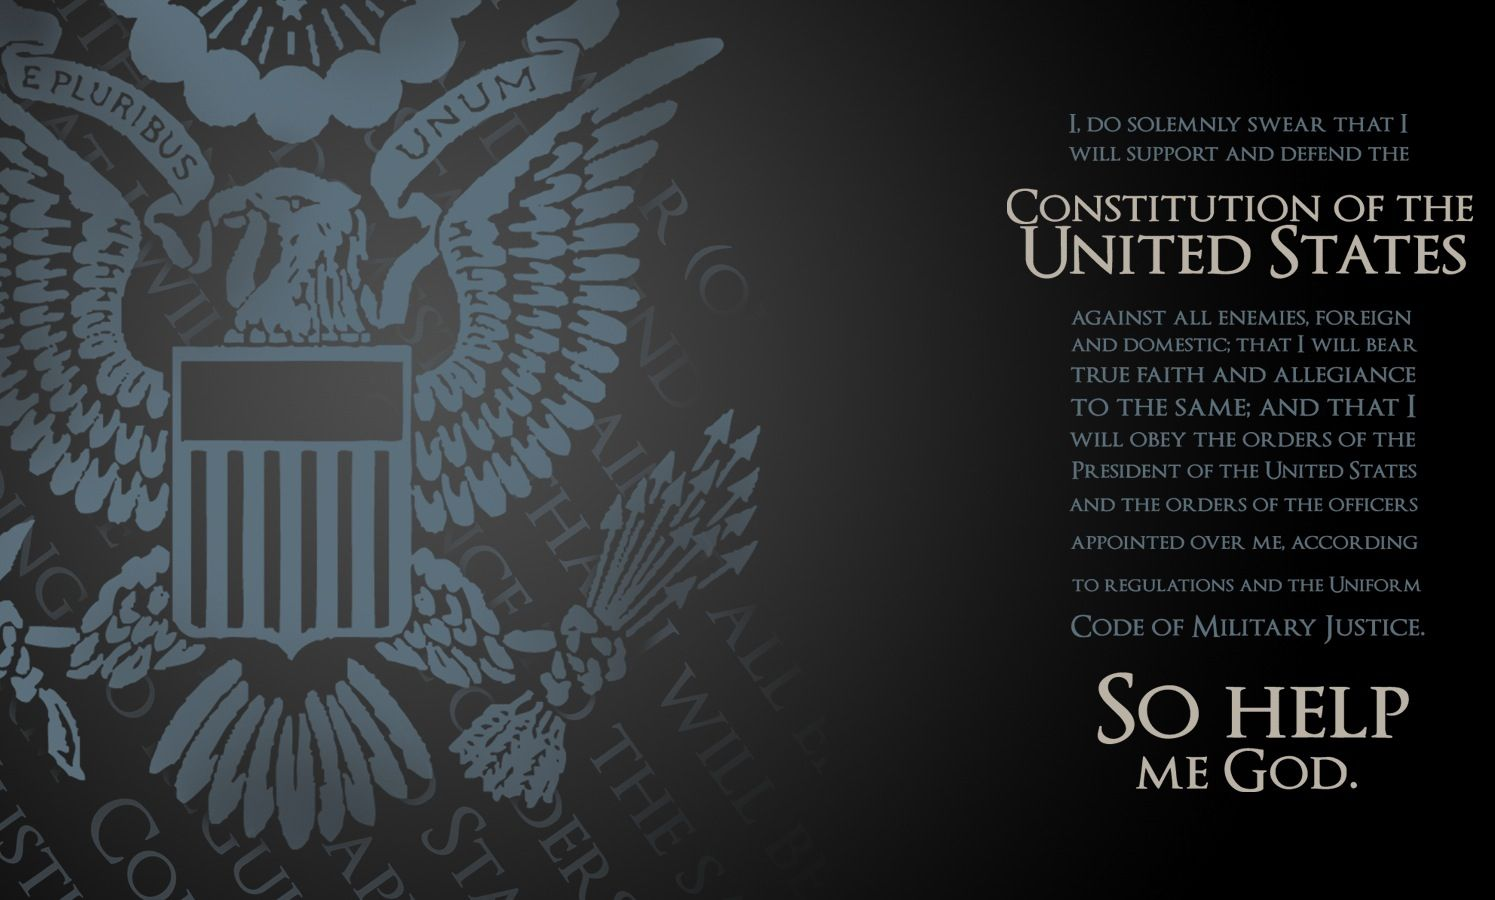 Oath of Enlistment Us army infantry, Army wallpaper